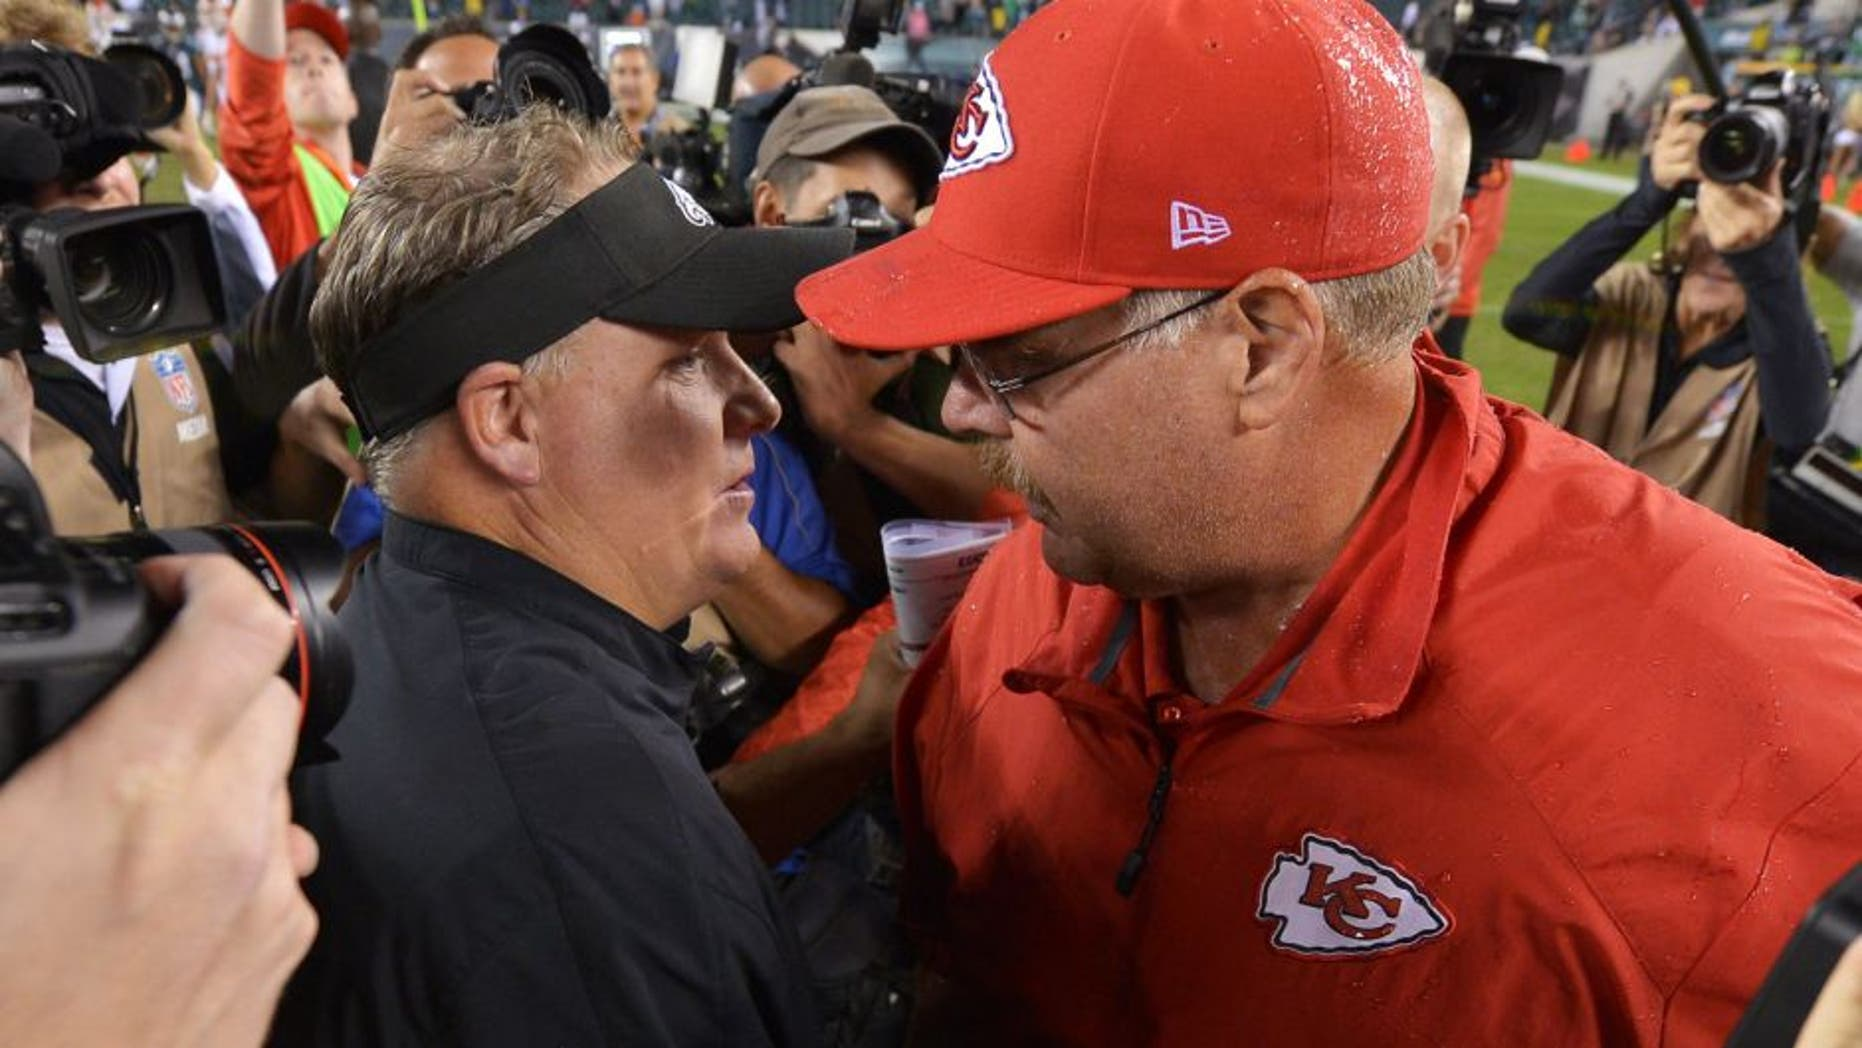 PHILADELPHIA, PA - SEPTEMBER 19: Head coach Chip Kelly of the Philadelphia Eagles and head coach Andy Reid of the Kansas City Chiefs shake hands after the game at Lincoln Financial Field on September 19, 2013 in Philadelphia, Pennsylvania. The Chiefs won 26-16. (Photo by Drew Hallowell/Philadelphia Eagles/Getty Images)